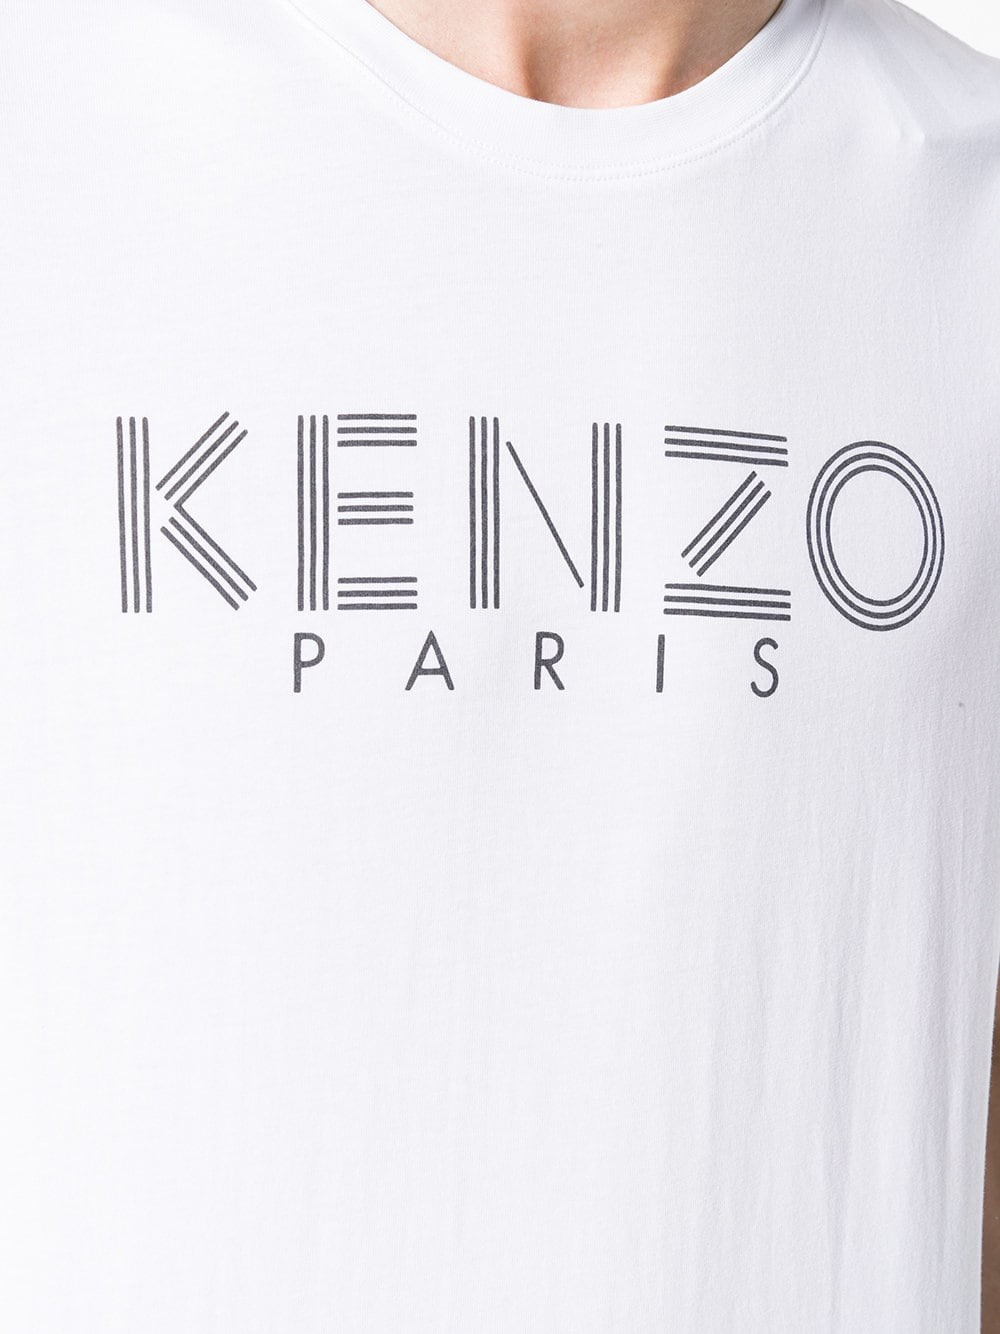 51c3f861 kenzo KENZO PARIS T-SHIRT available on montiboutique.com - 26692